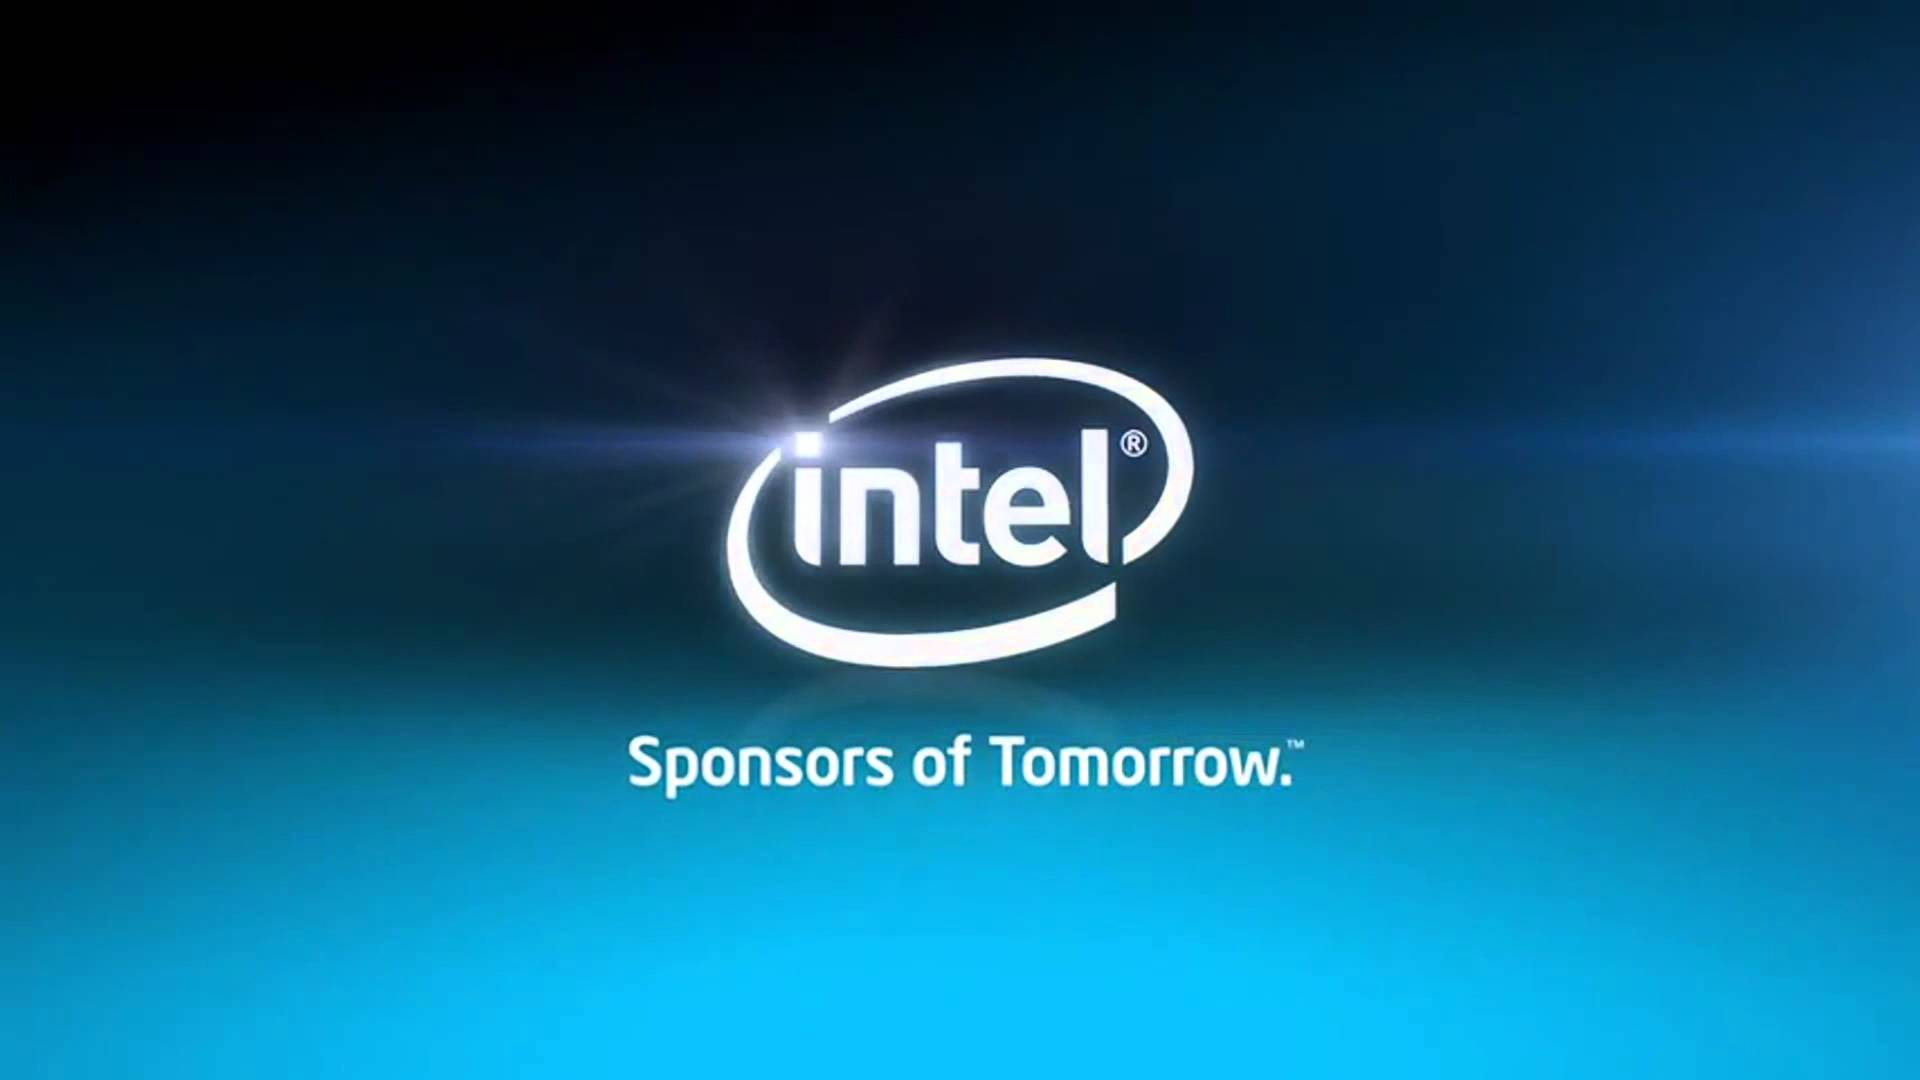 Intel Logo Wallpaper Latest Cool oru160us Yoanu 1920x1080